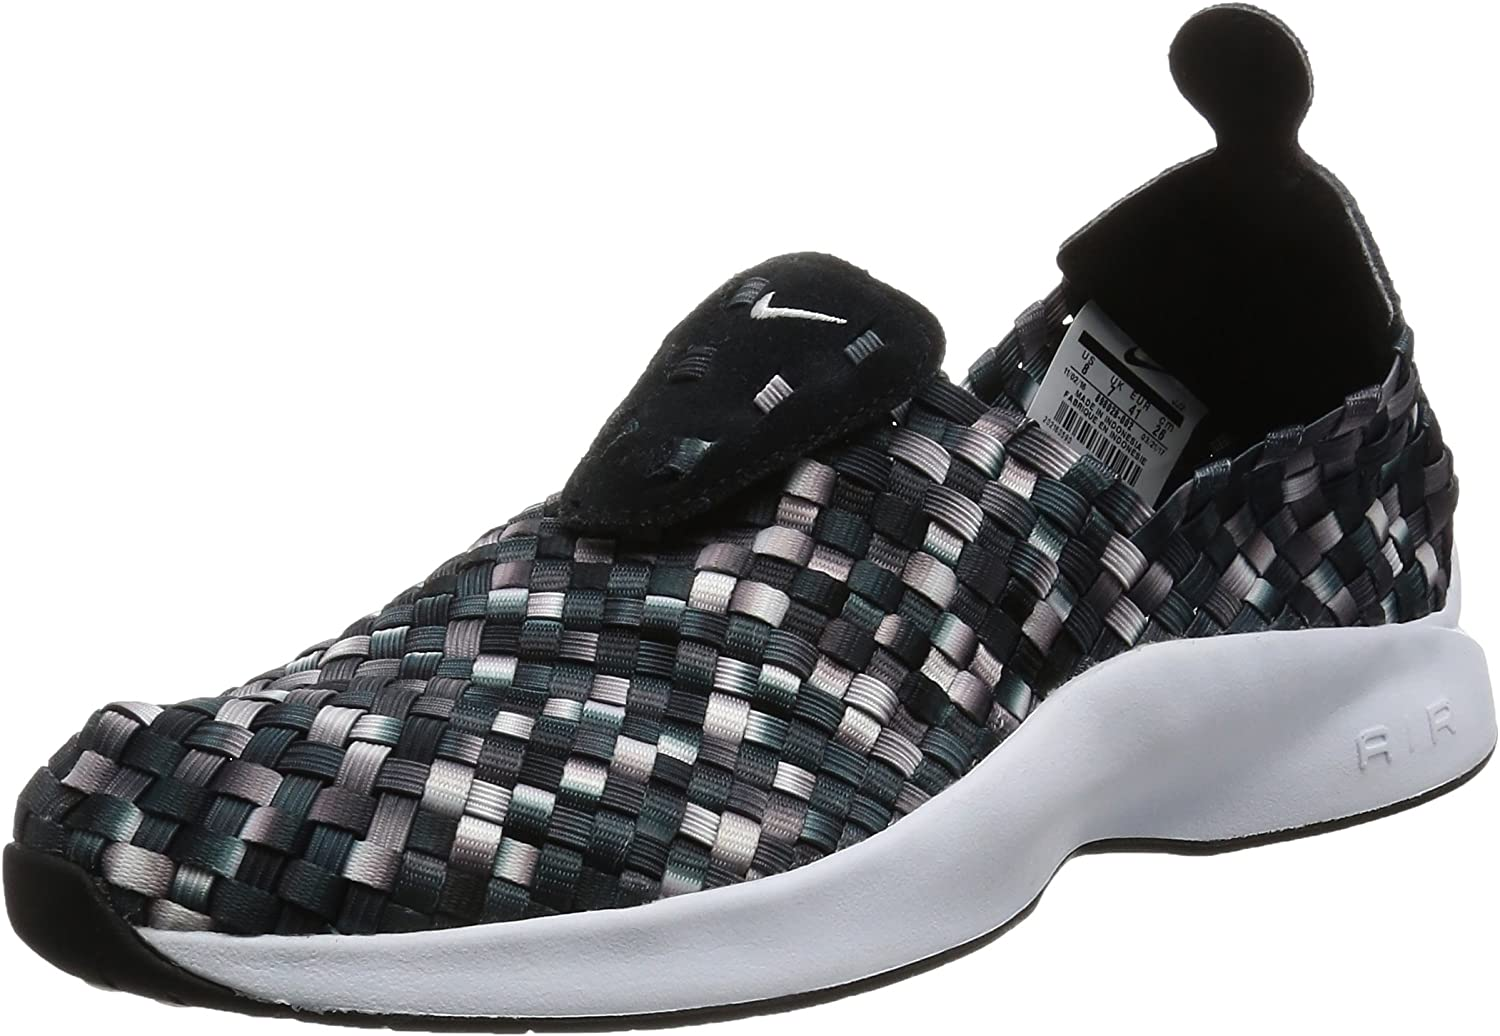 Nike Mens Air Woven Premium Running Low Top Athletic shoes